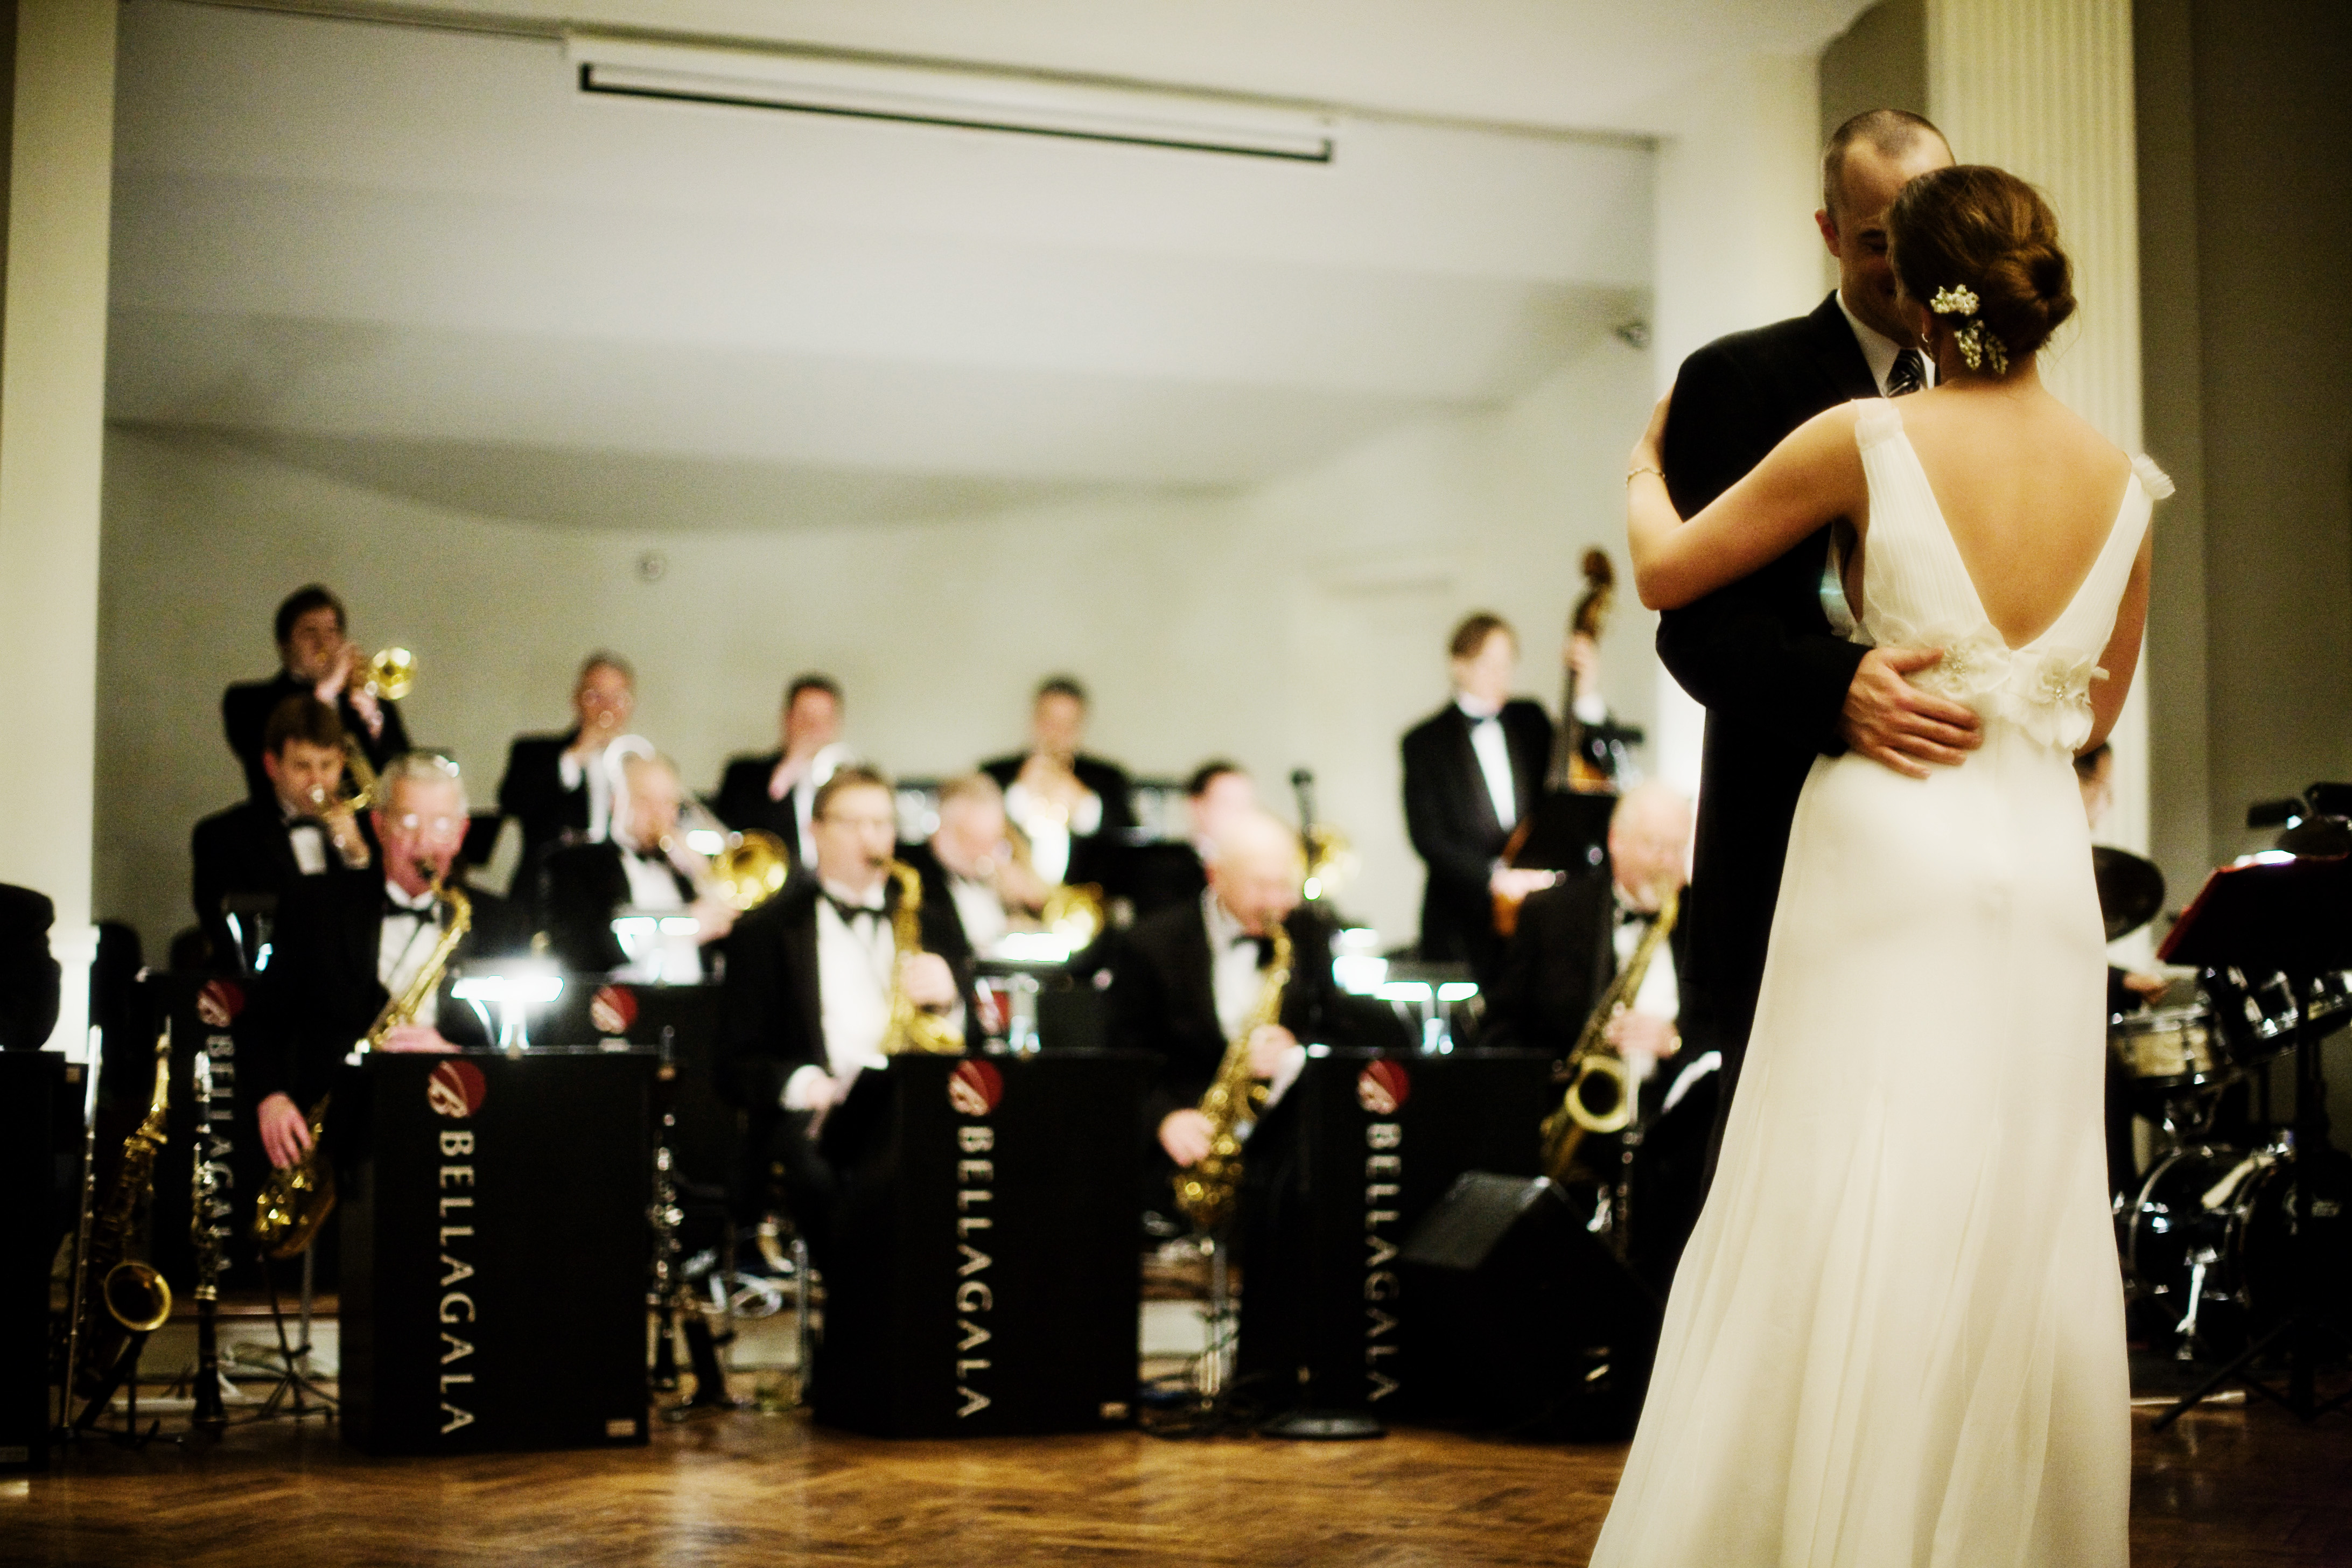 Live Party Bands Amp Performers Hire For Party Wedding Music Miami